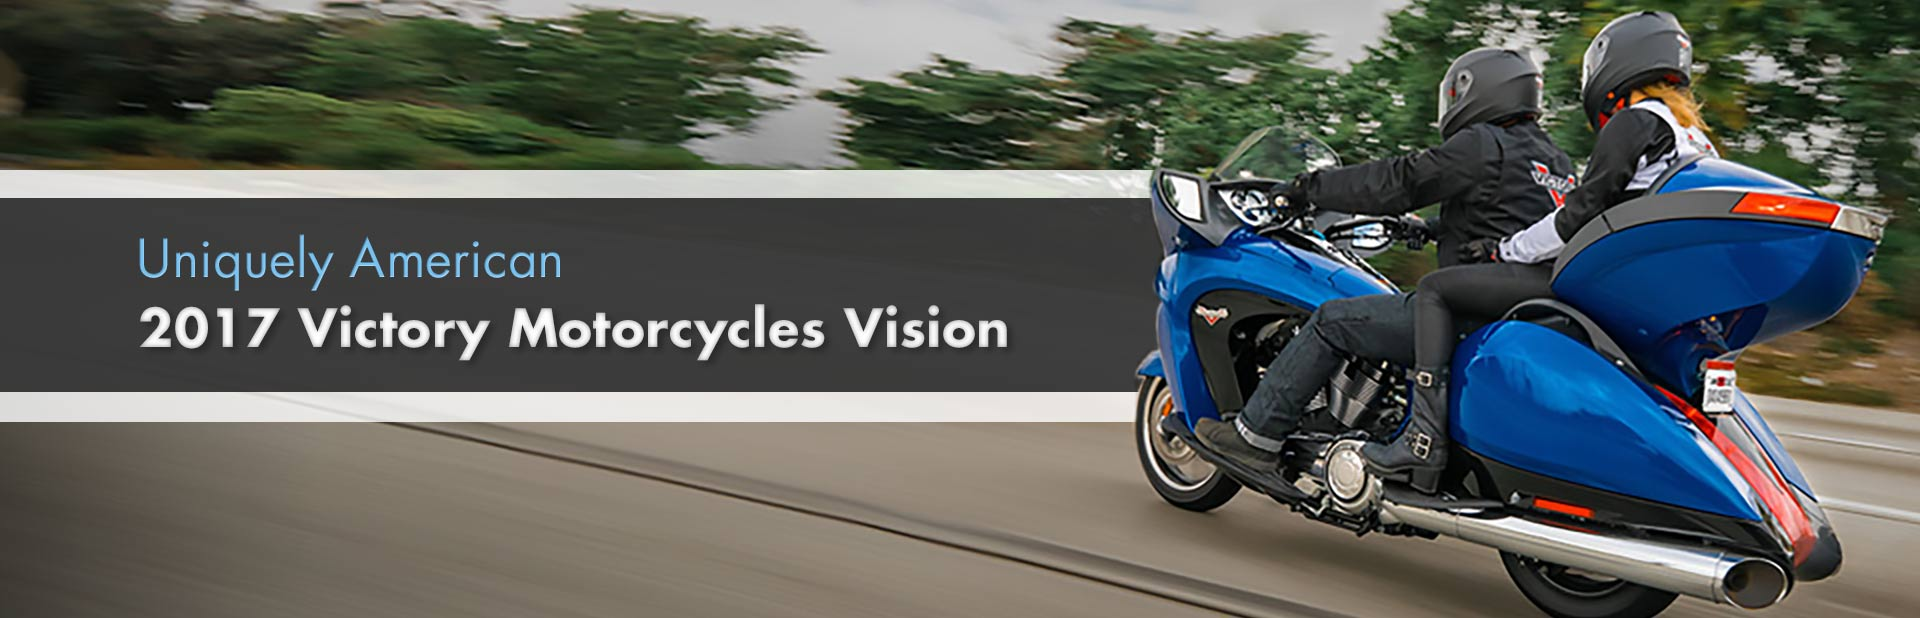 2017 Victory Motorcycles Vision: Click here to view the model.